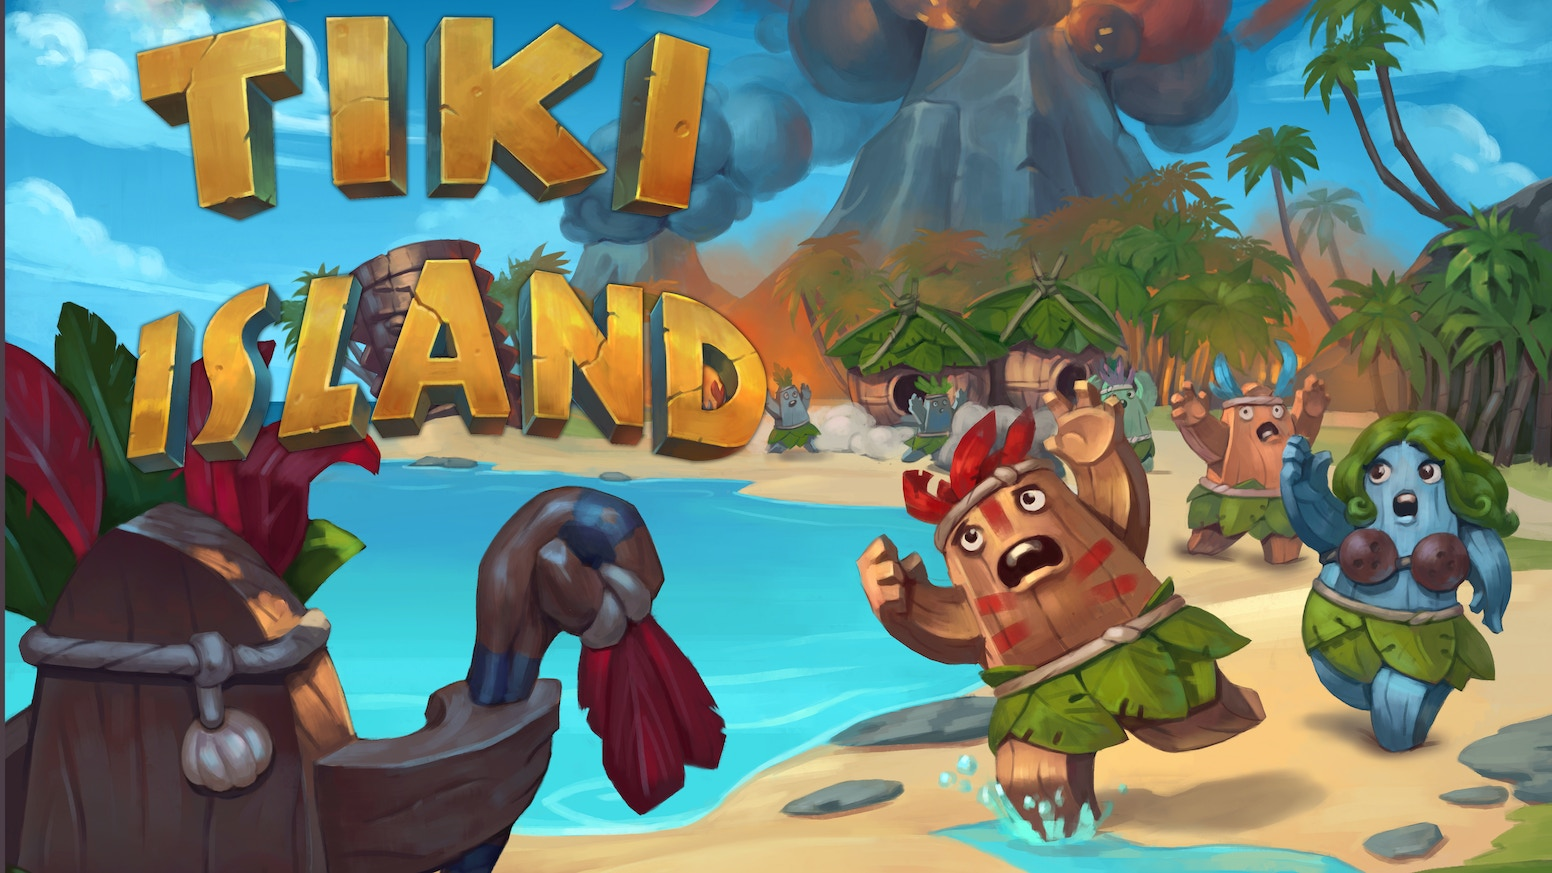 Tiki island is a family oriented race from destruction! Fun yet simple game play lets hardcore fans and kids enjoy the game together!